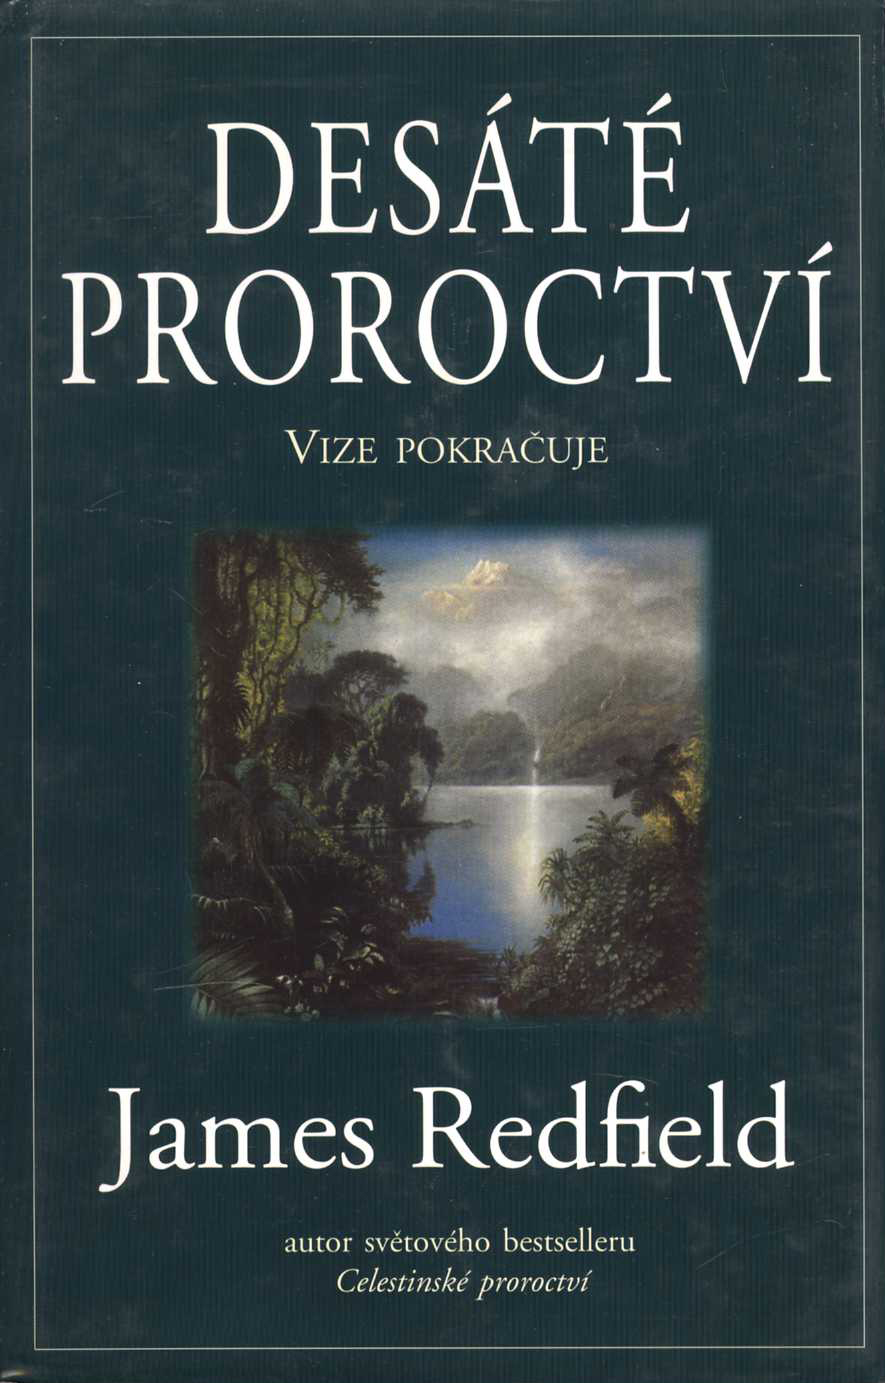 Desáté proroctví (James Redfield)